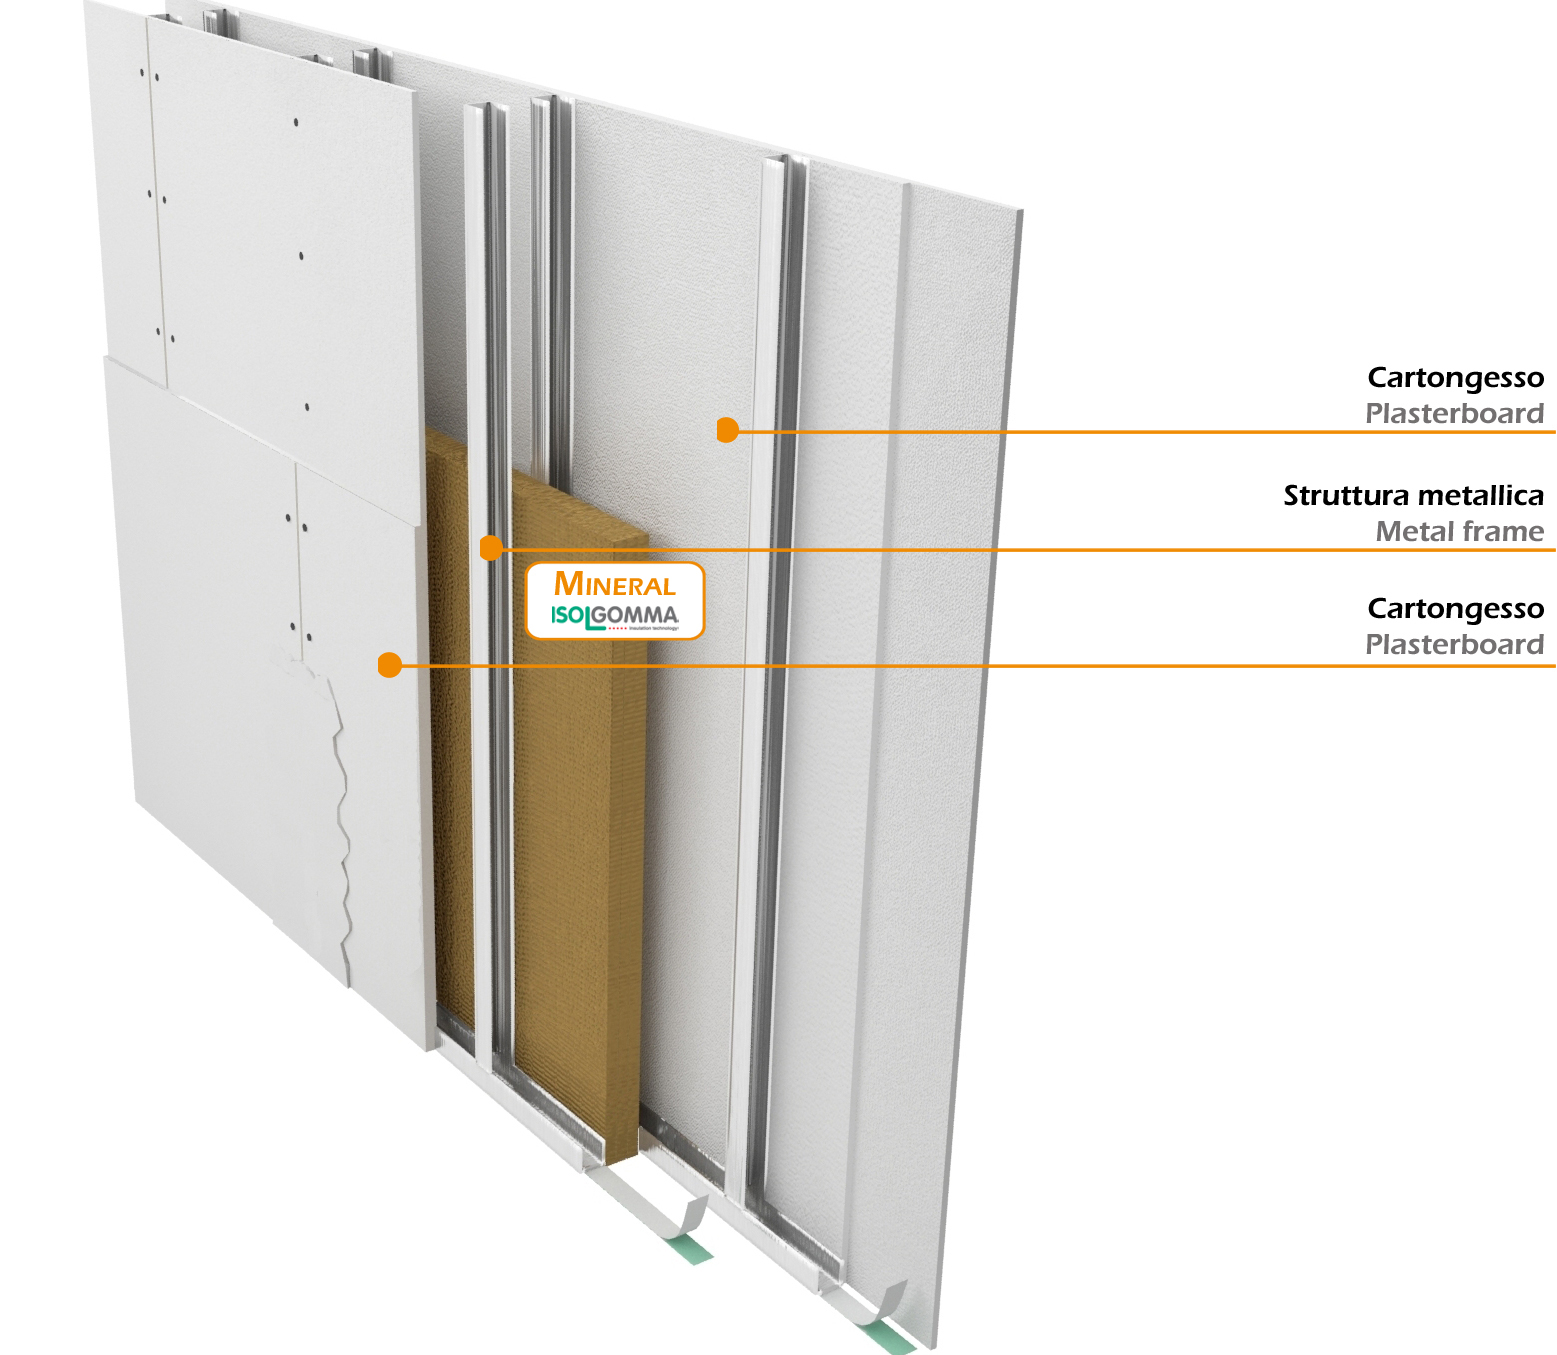 Mineral Insulation Panels : Thermal insulation panel mineral by isolgomma